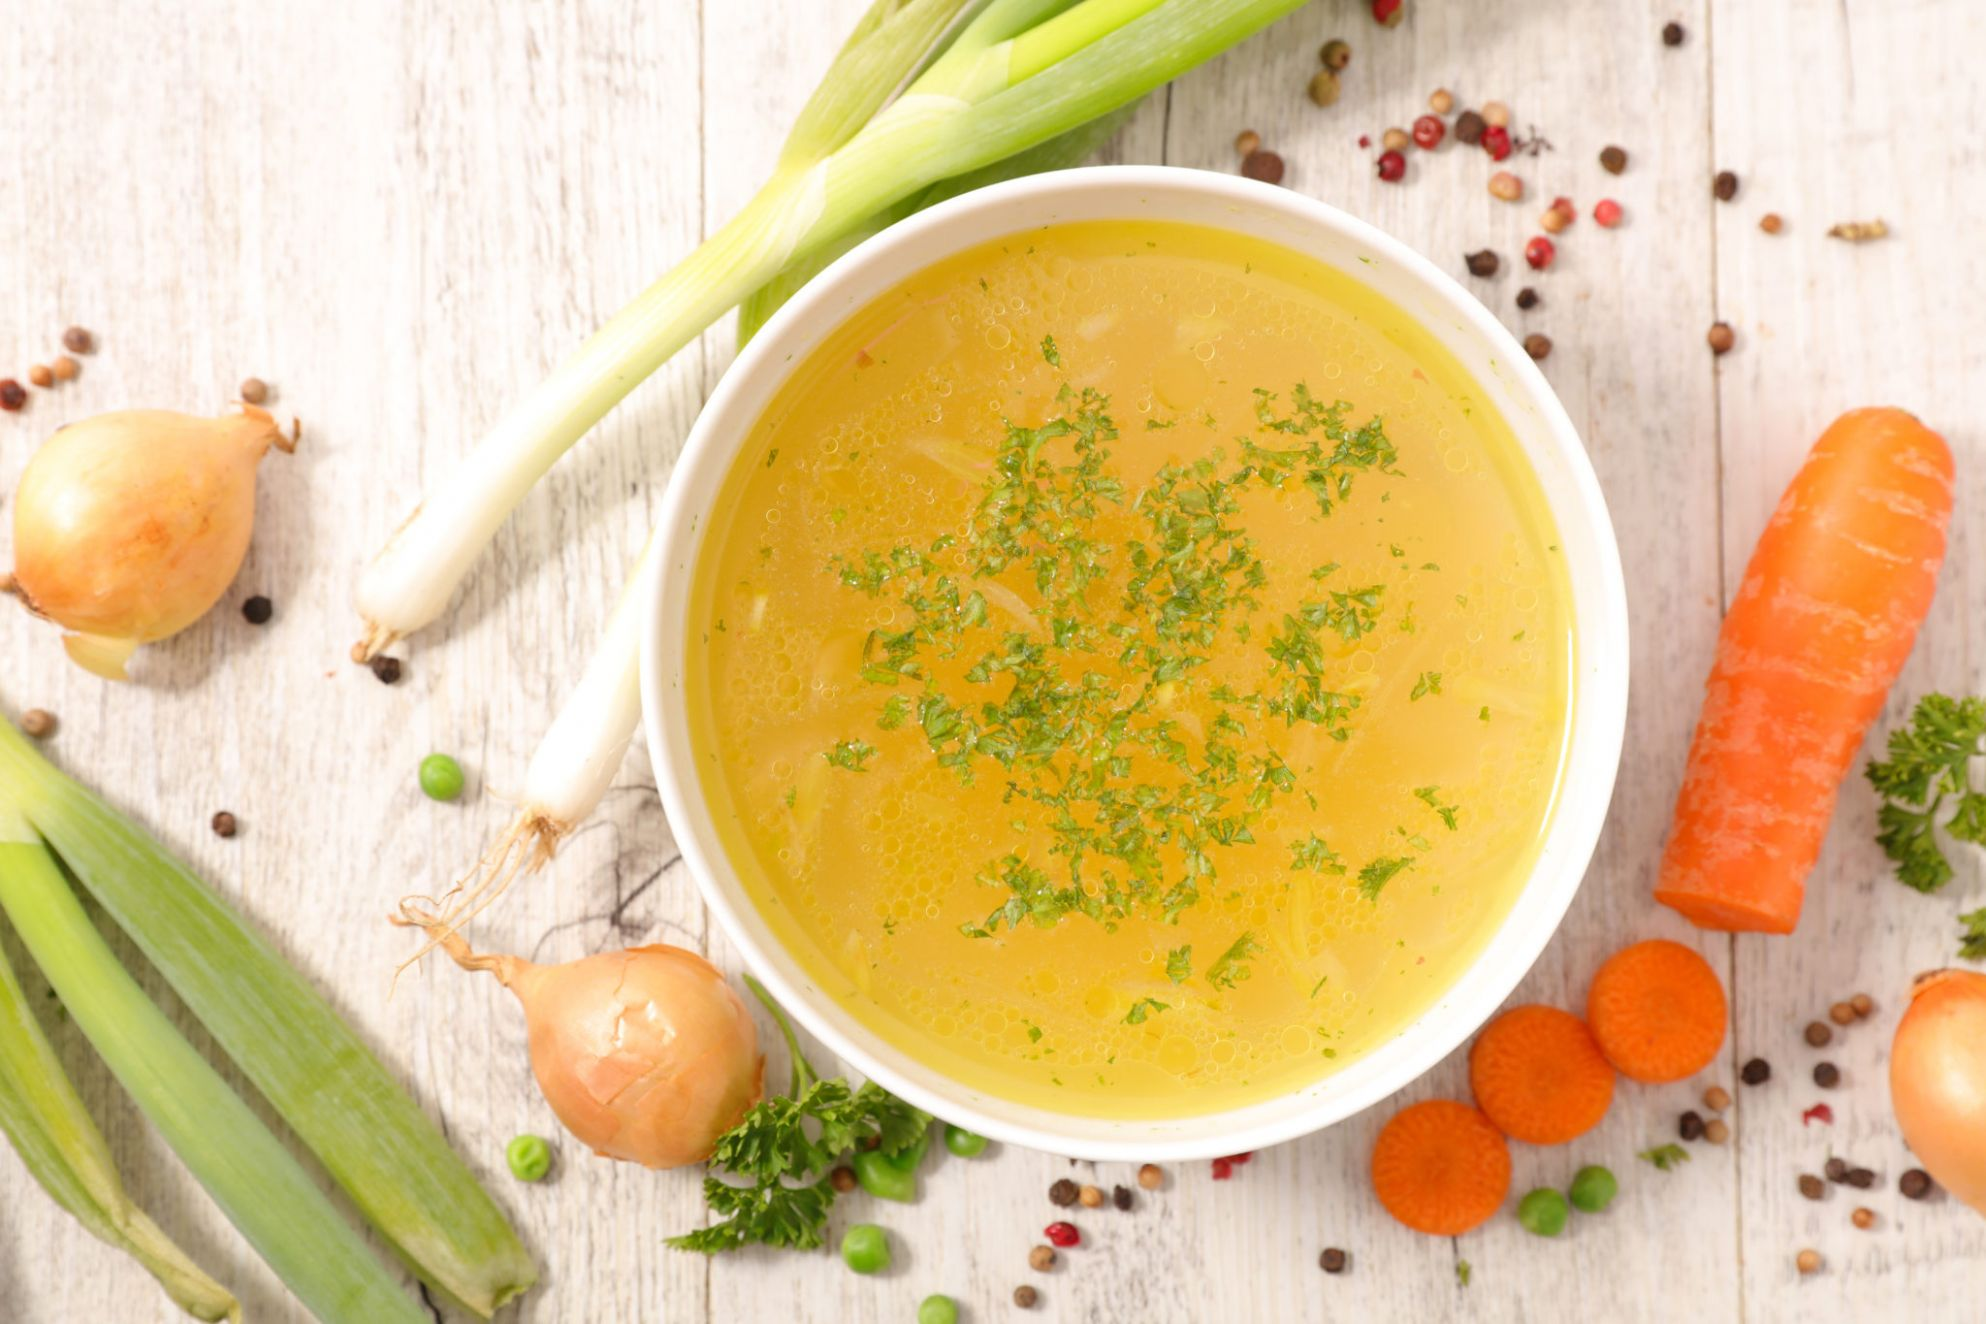 Homemade Vegetable Stock Recipe - Recipes With Vegetable Stock